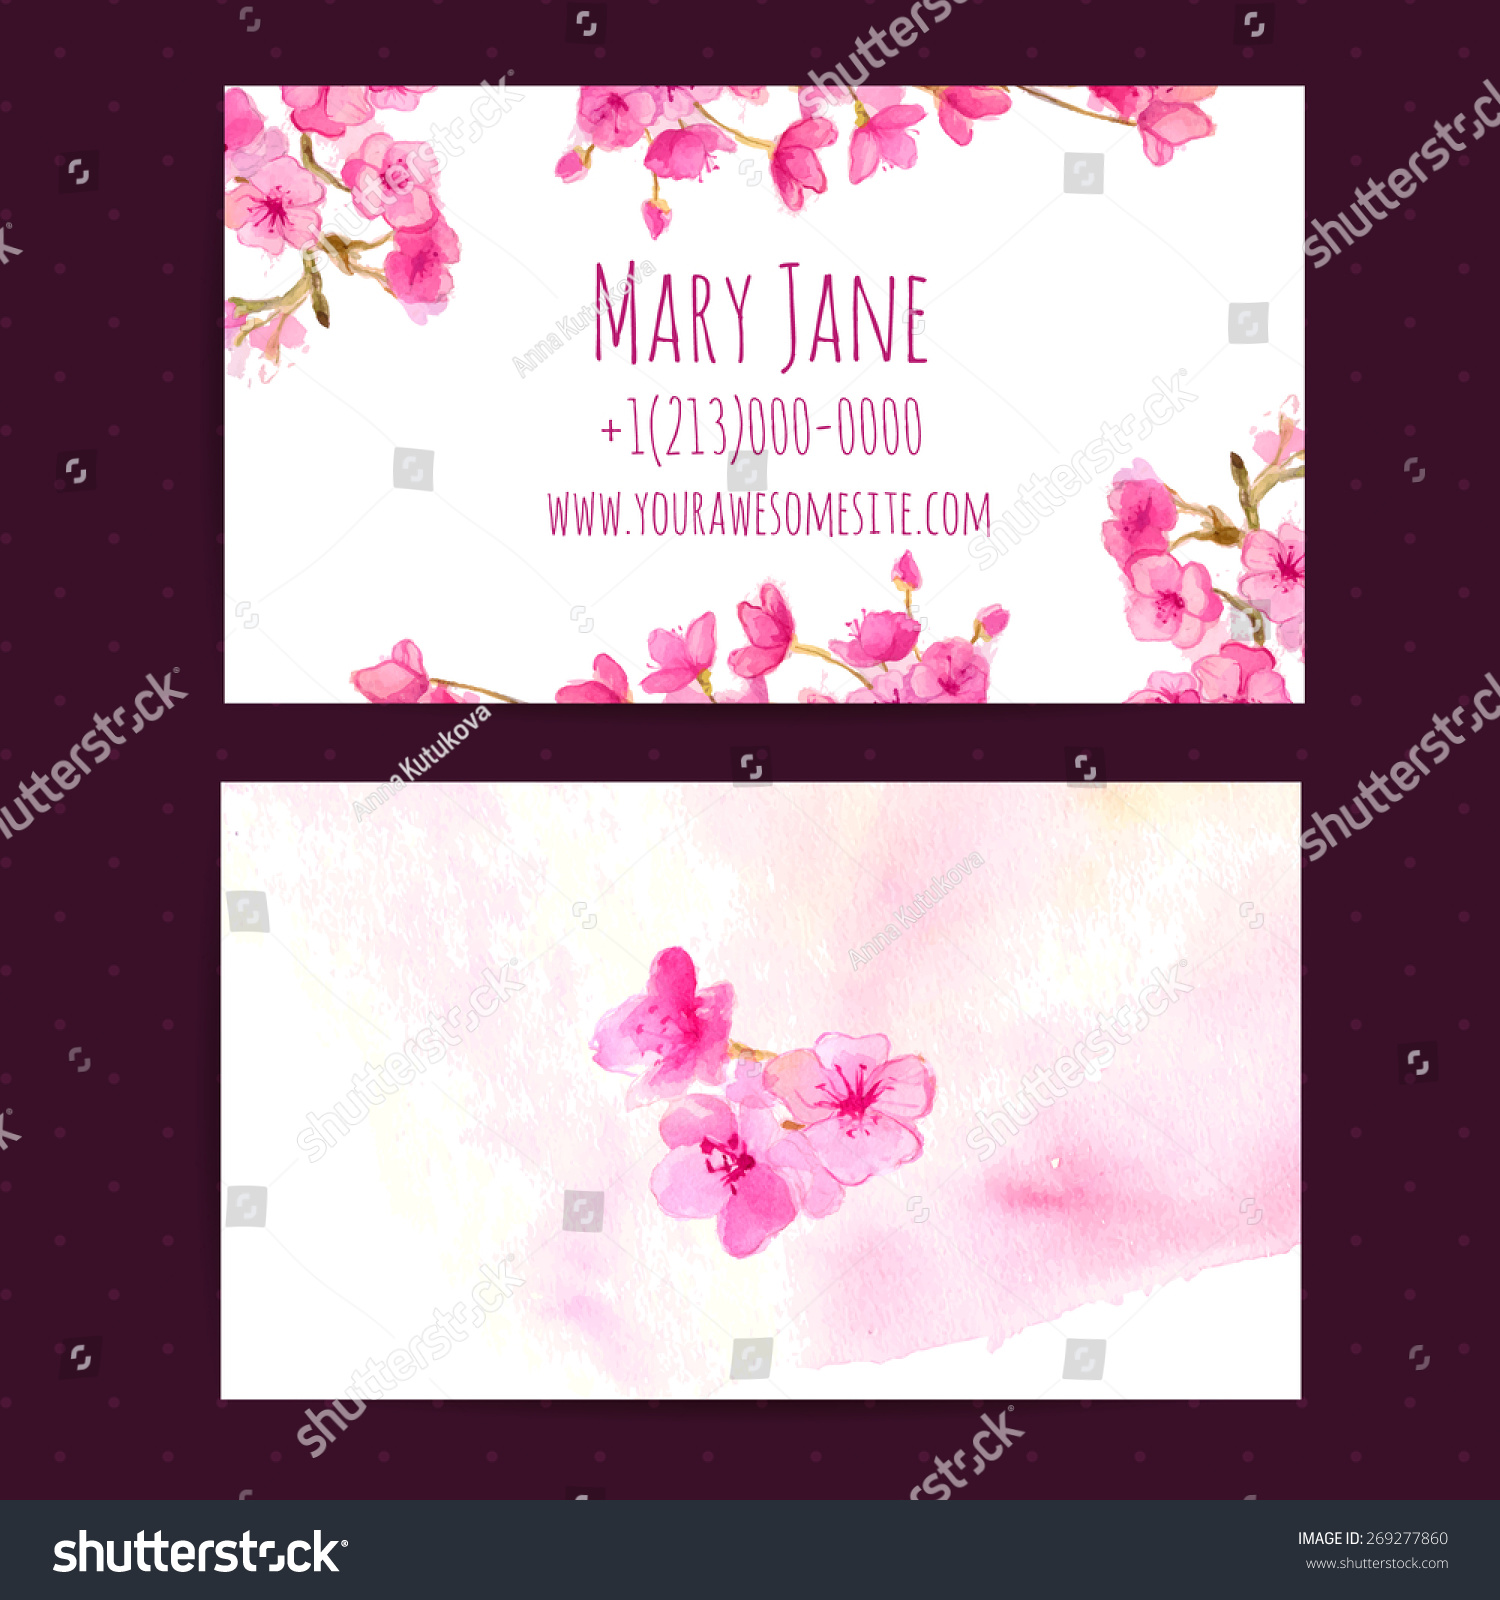 Business Card Vector Template Pink Cherry Stock Vector HD (Royalty ...